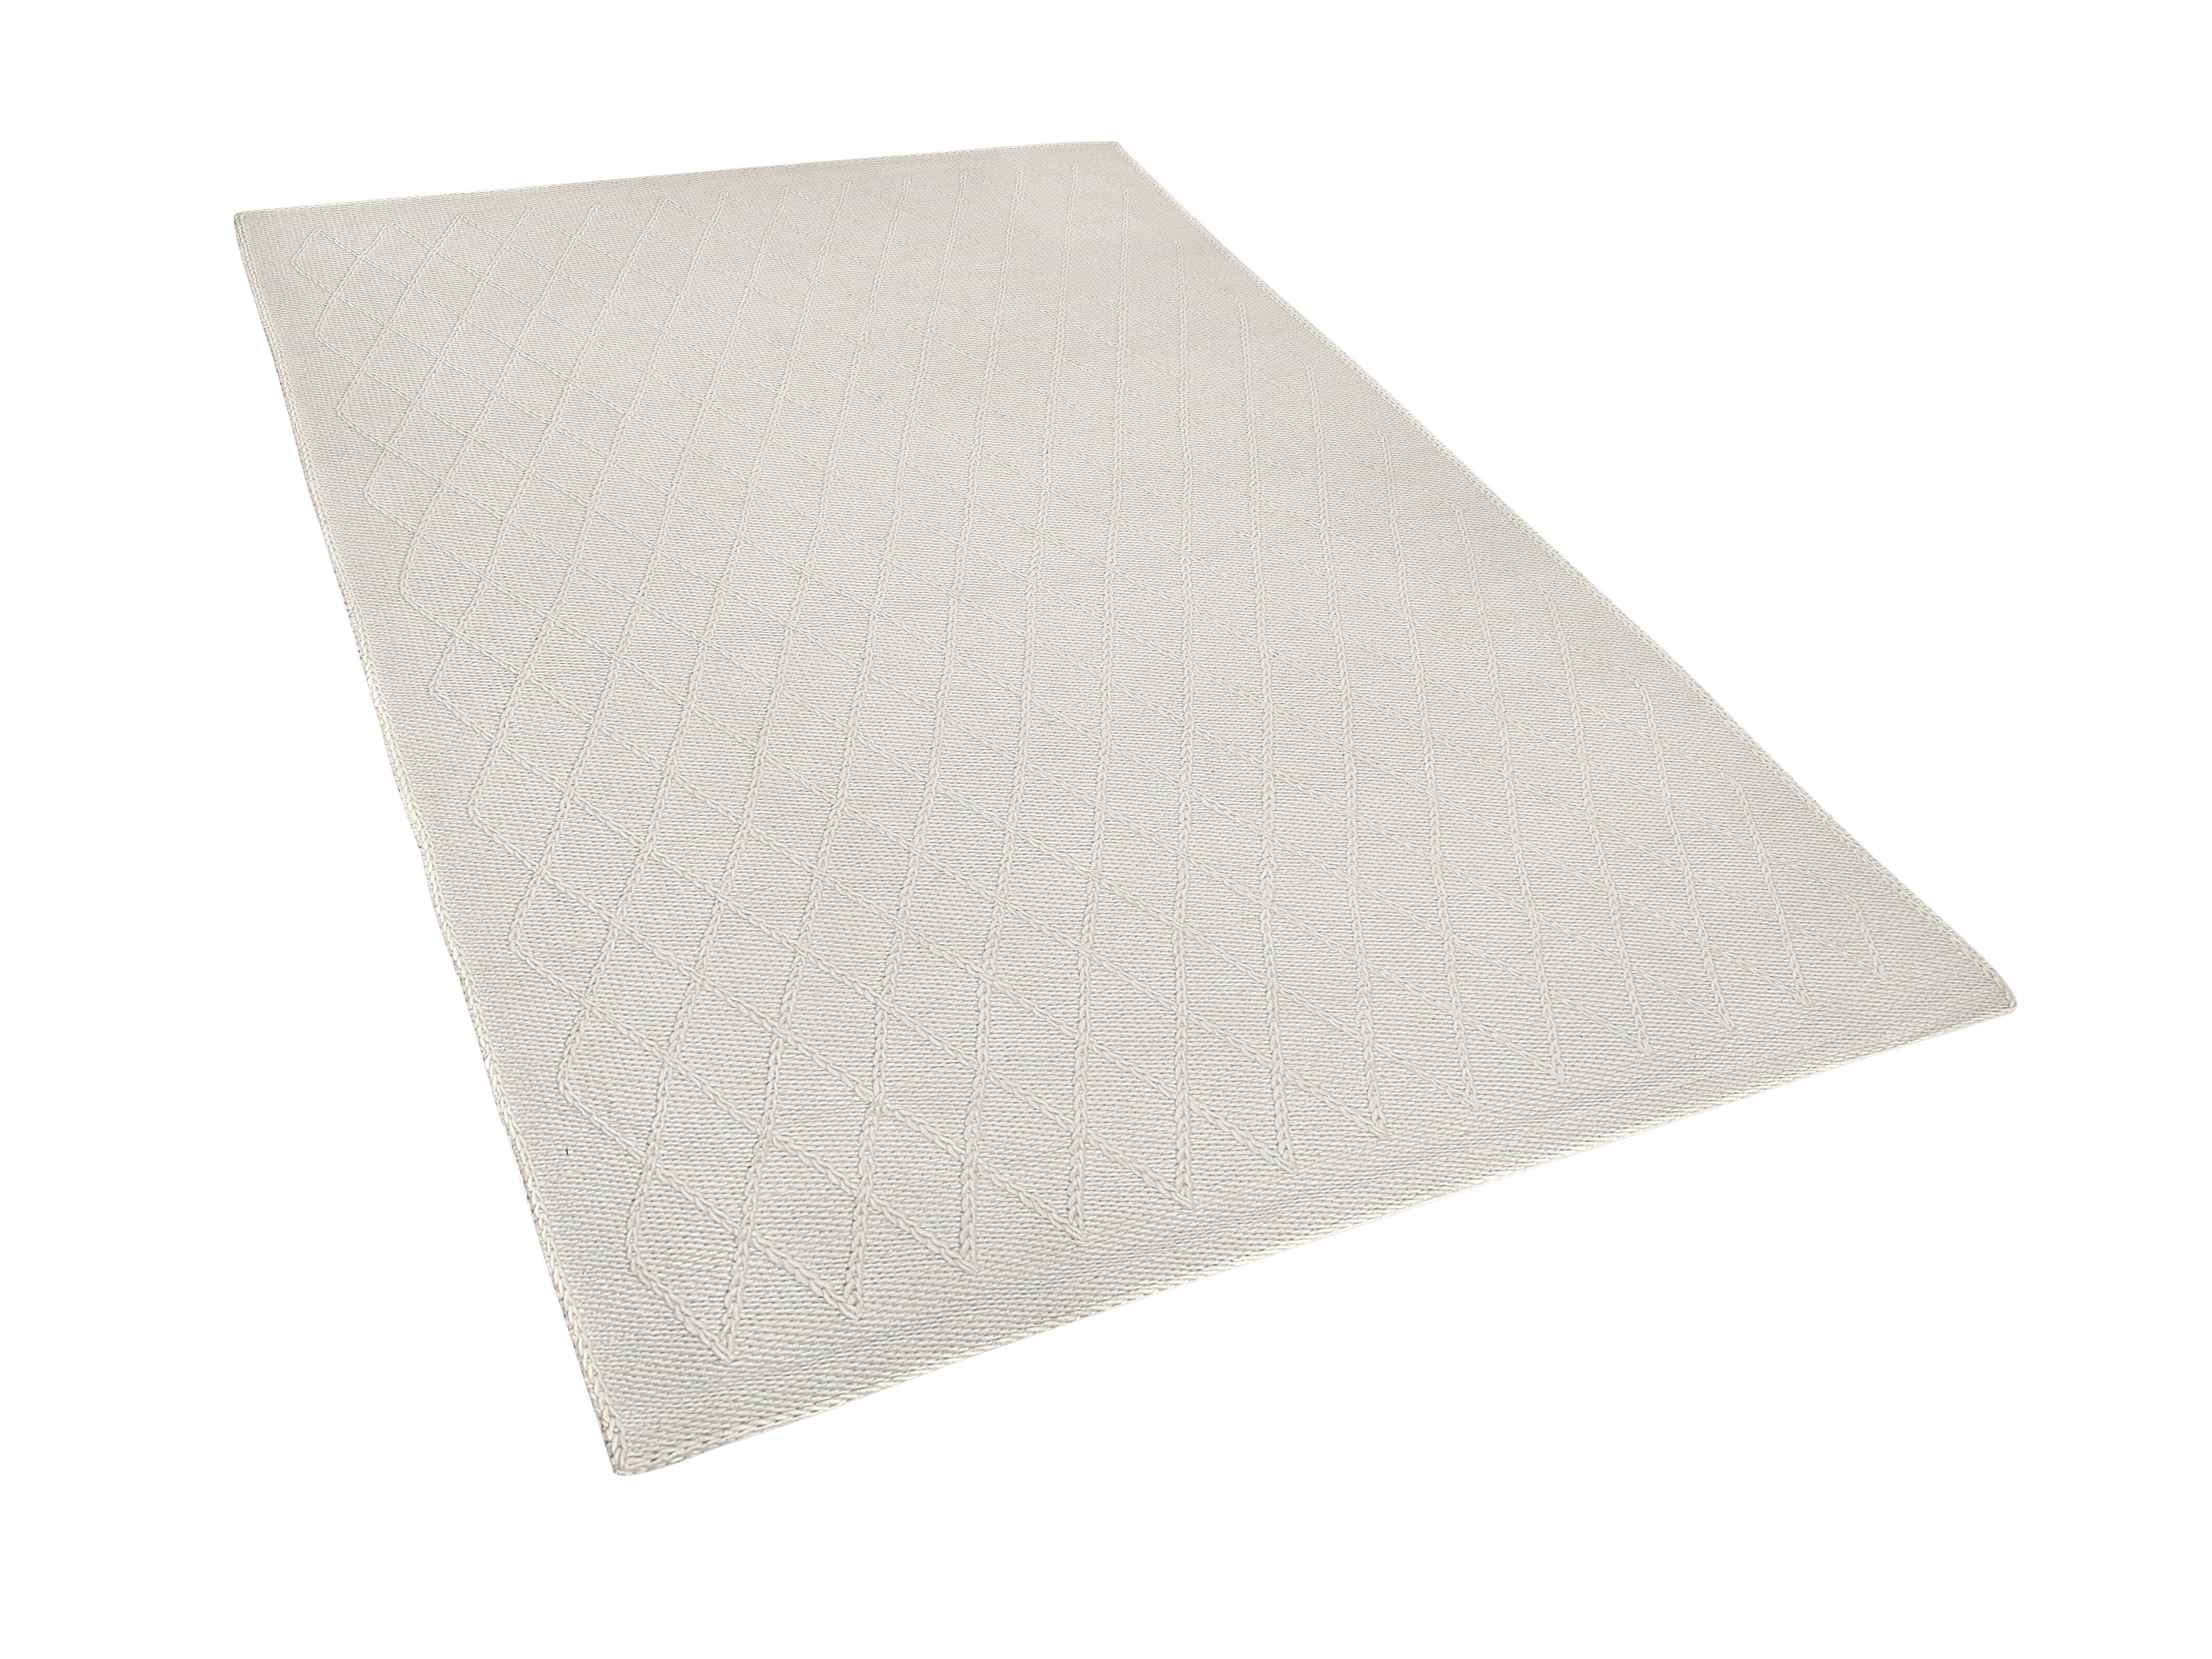 Area Rug 160 X 230 Cm Off White Erzin Ex Factury At Fair Price Right To Return Within 100 Days